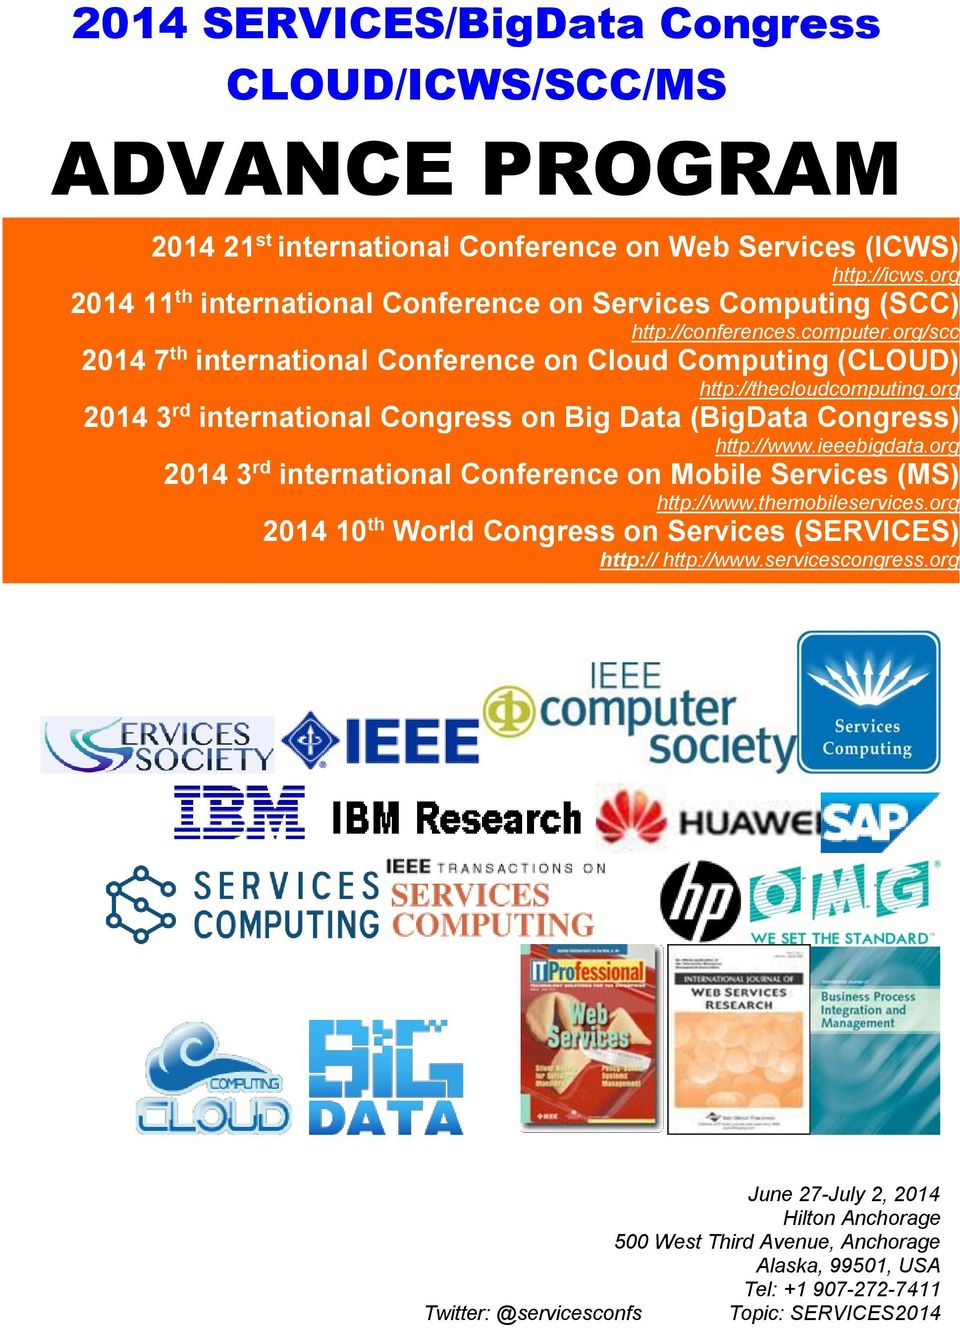 org/scc 2014 7 th international Conference on Cloud Computing (CLOUD) http://thecloudcomputing.org 2014 3 rd international Congress on Big Data (BigData Congress) http://www.ieeebigdata.